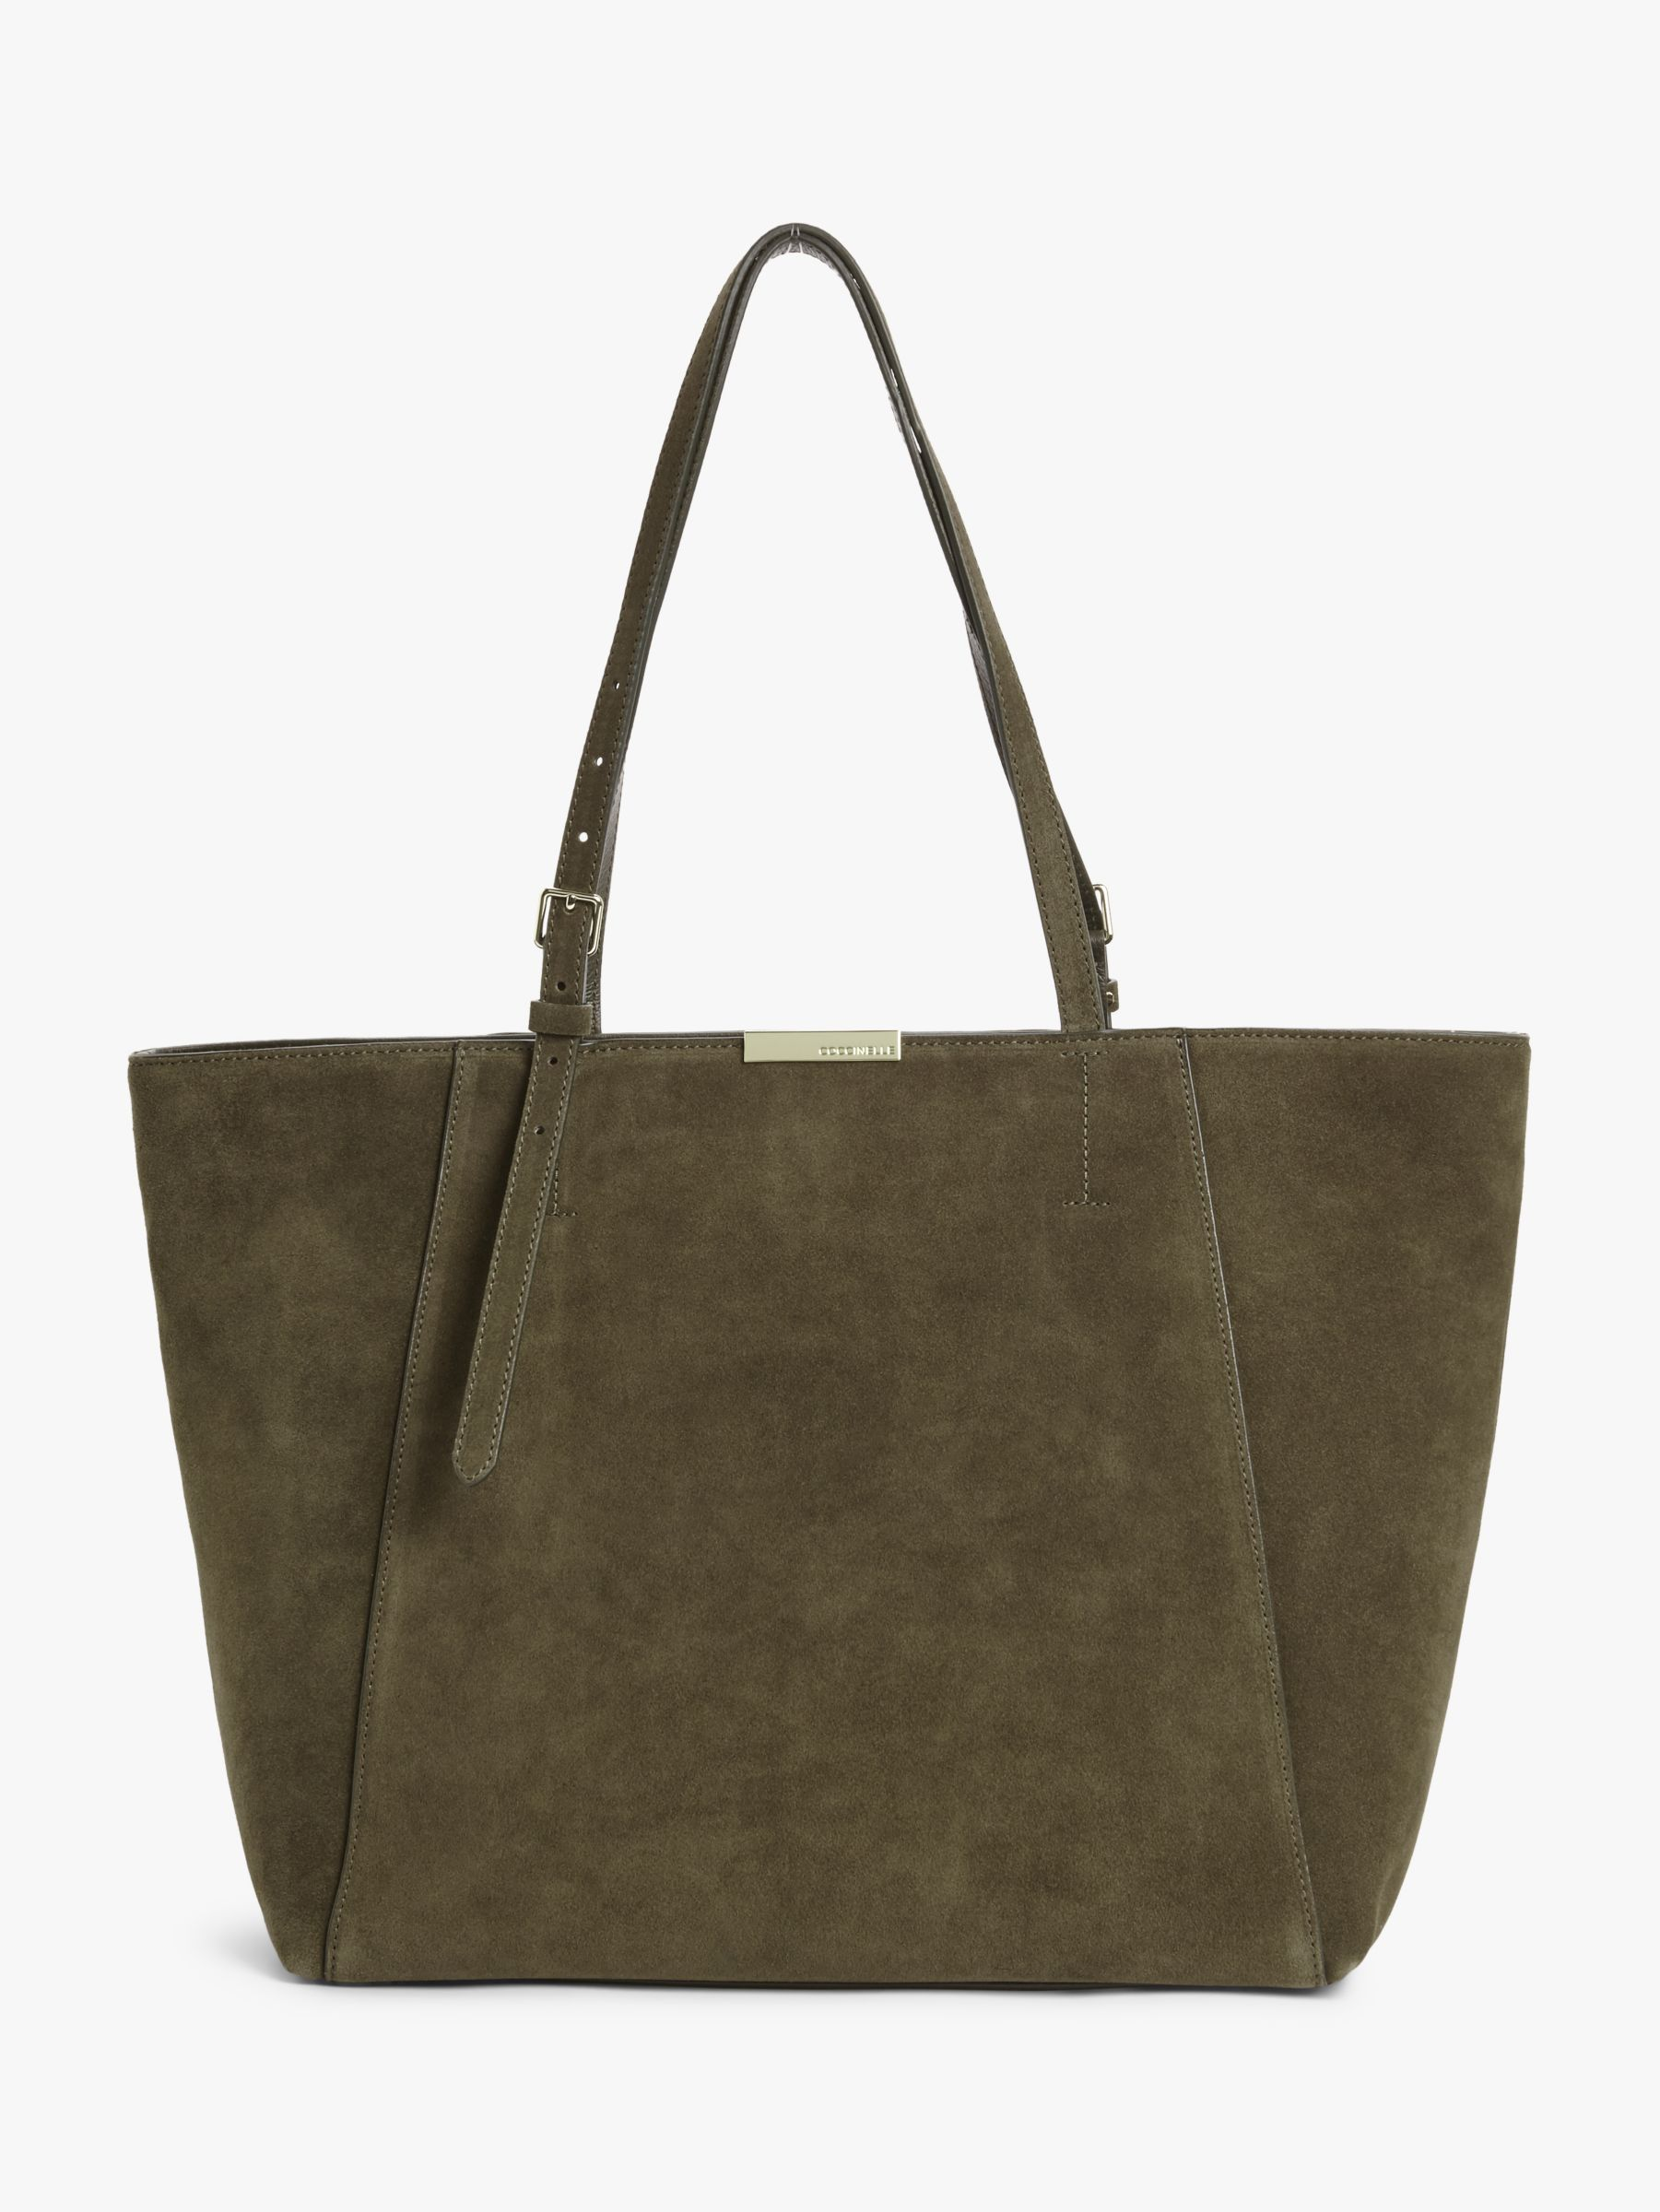 Coccinelle Coccinelle Cher Suede Tote Bag